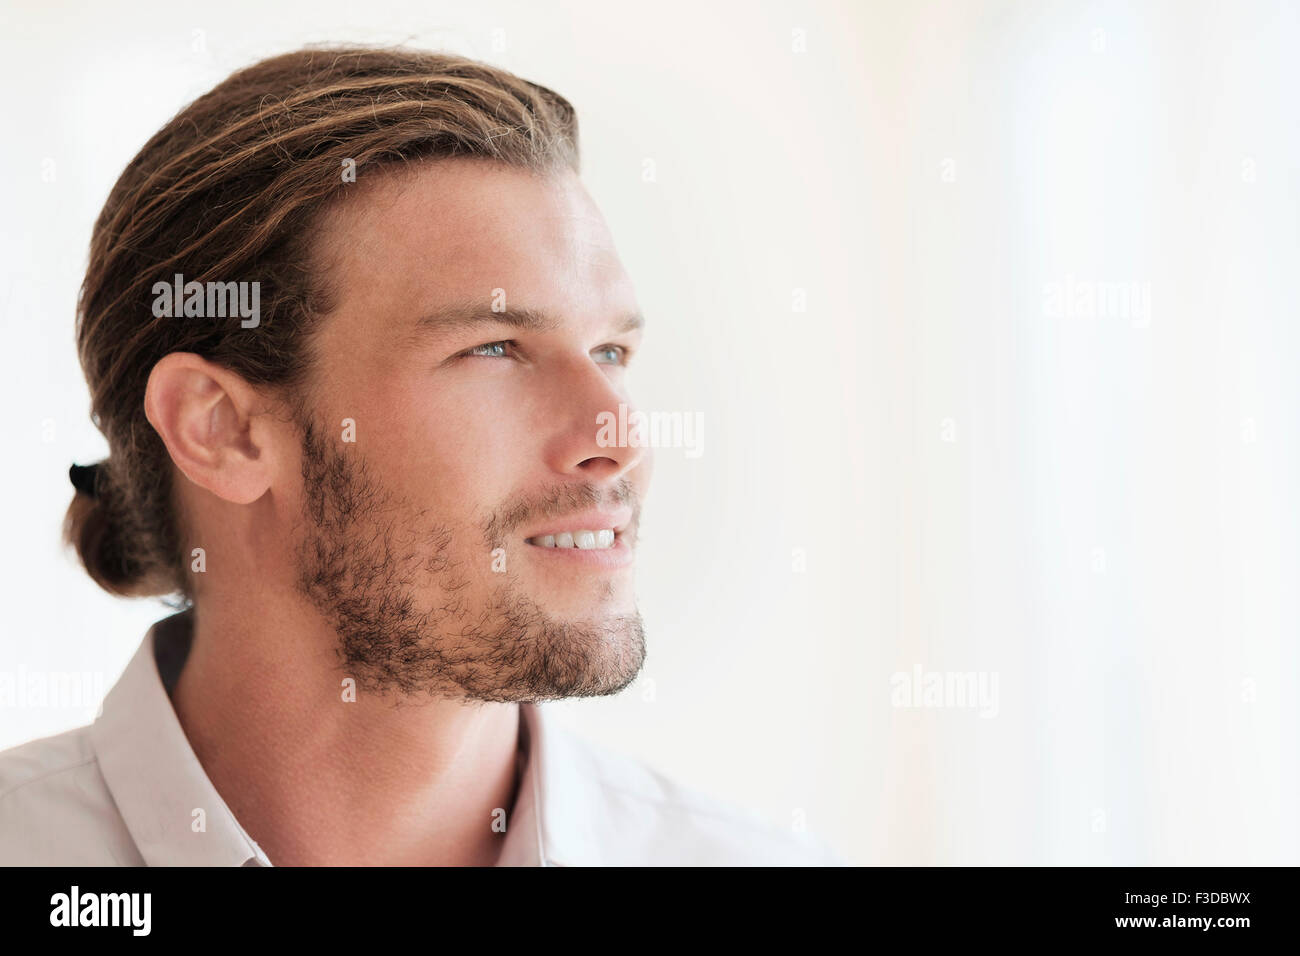 Mid-adult man looking away Photo Stock